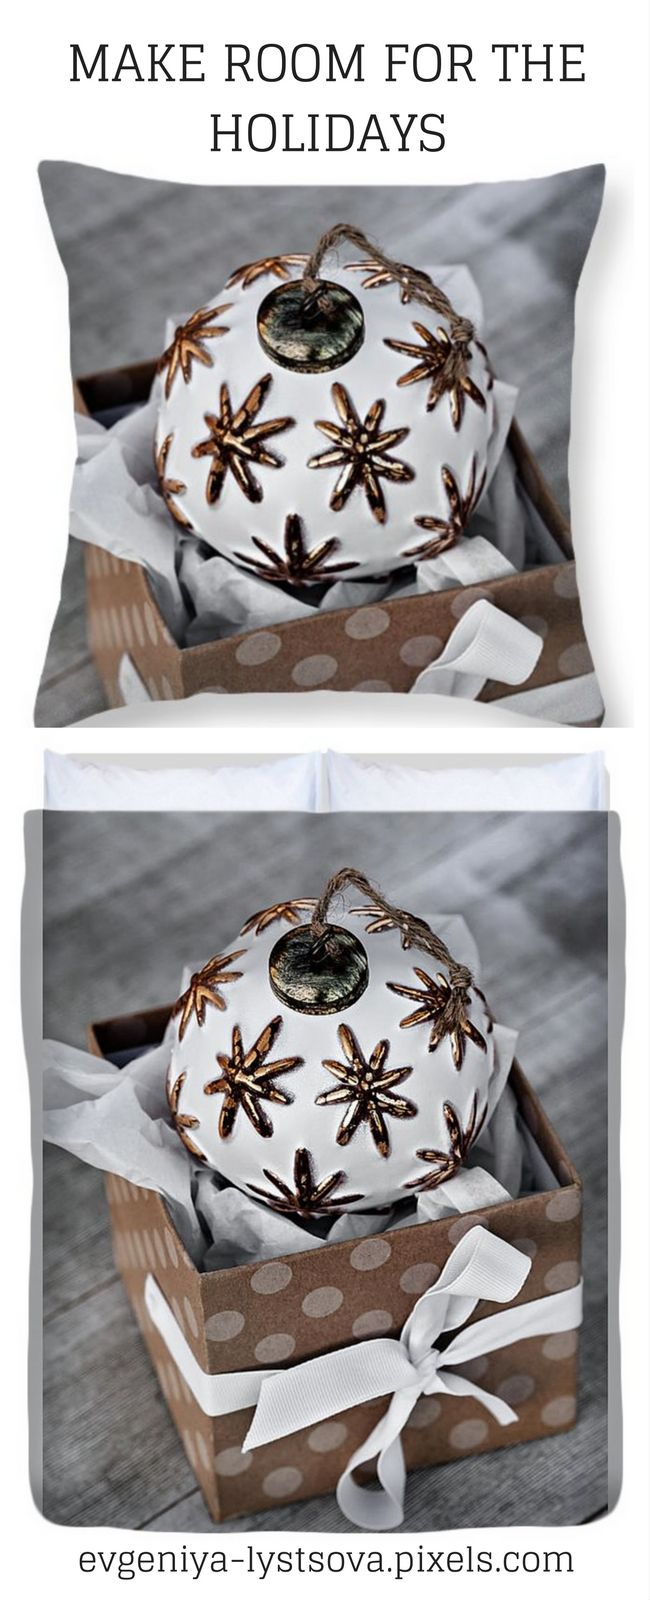 Throw Pillow and Duvet Cover featuring the photograph Warm Thoughts by Evgeniya Lystsova. Opened Christmas Gift on Wooden Table, Winter Holiday Concept. Let your Gift stand out from everybody else's! #EvgeniyaLystsovaFineArtPhotography #Christmas #Bedroom #GiftIdeas #HomeDecor #InteriorDesign #DuvetCover #ThrowPillow